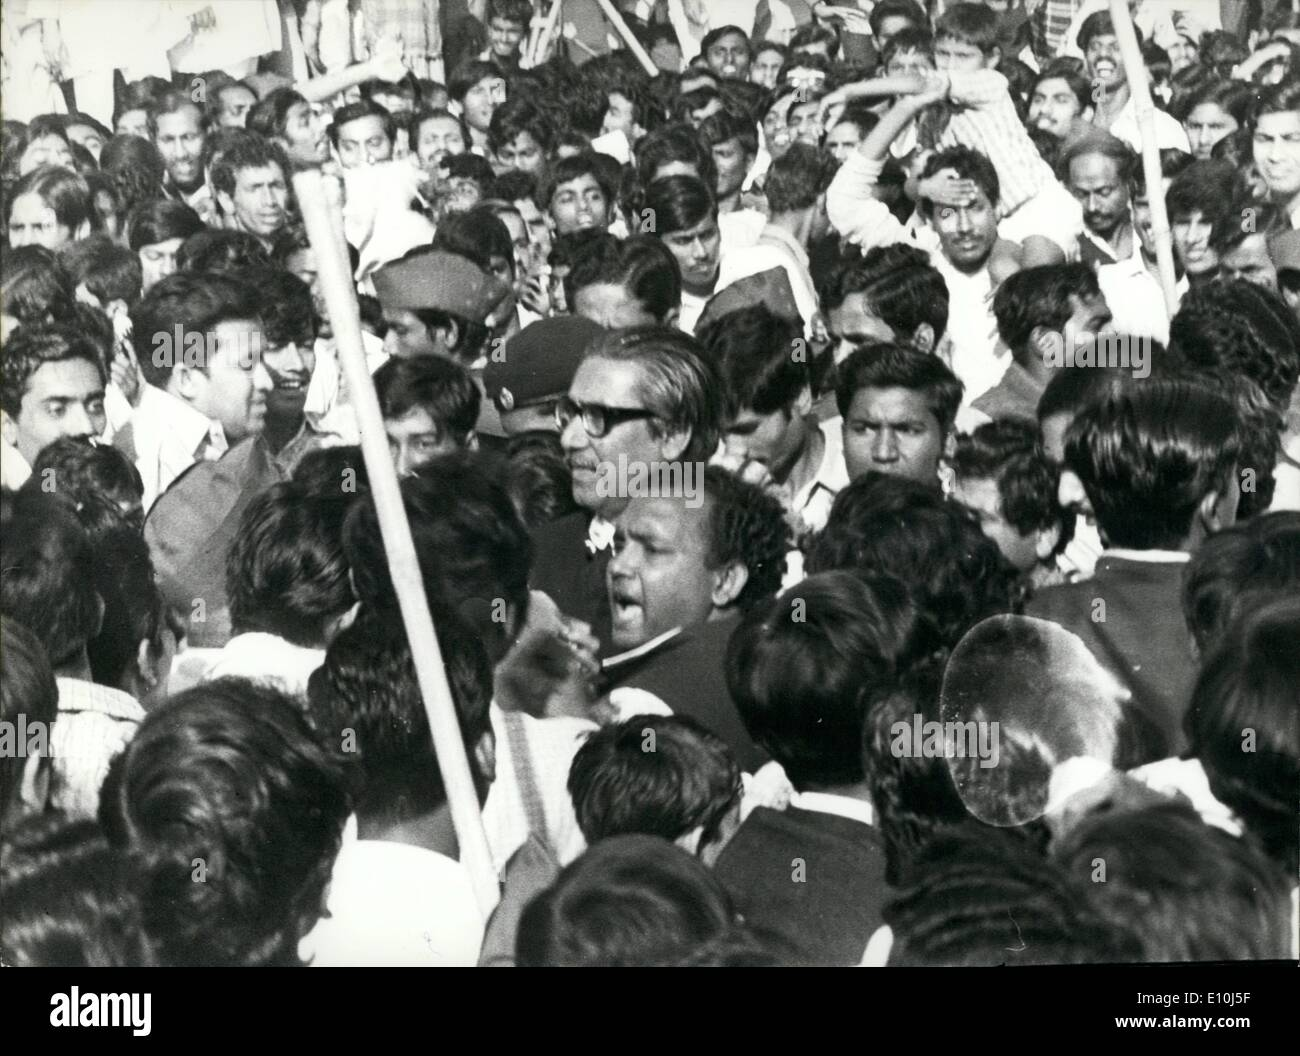 Mar. 03, 1973 - First General Election in Bangladesh.: Sheik Mujibur Rahman, prime minister of Bangladesh, being mobbed by people as he comes to the Martyr's Column to pay his respect. People call Mujubur Rahman ''Father of the Nation' - Stock Image